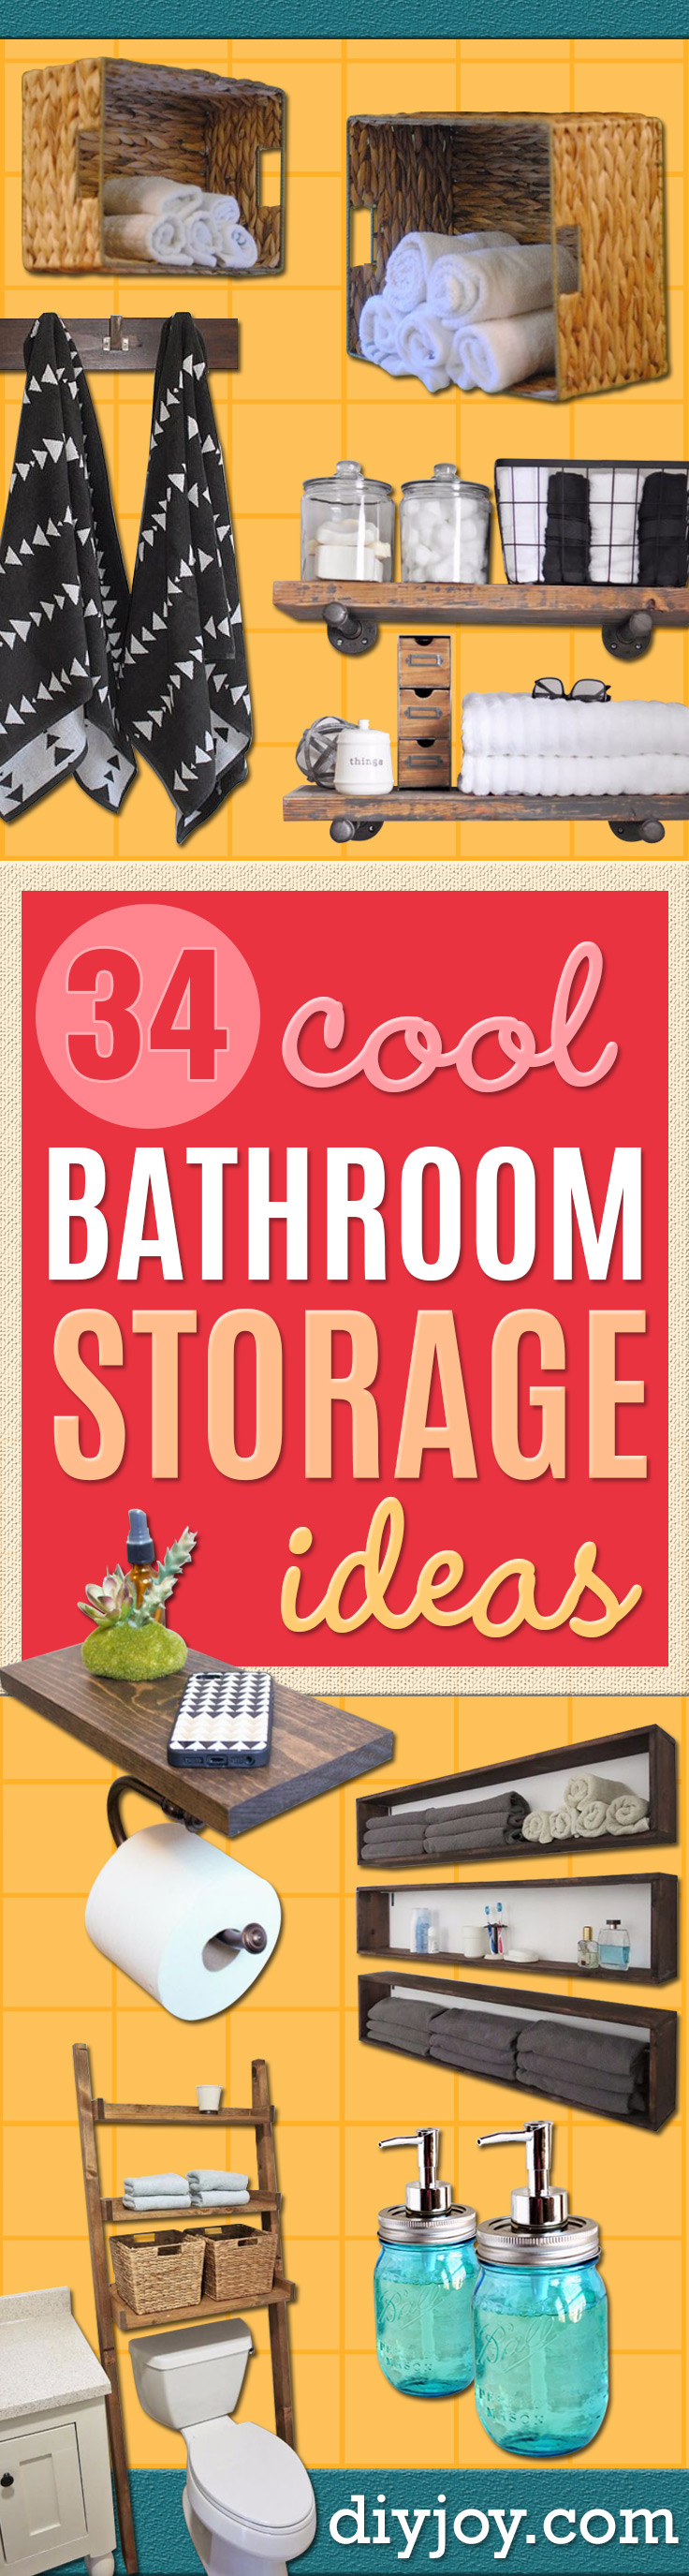 DIY Bathroom Storage Ideas - Best Solutions for Under Sink Organization, Countertop Jars and Boxes, Counter Caddy With Mason Jars, Over Toilet Ideas and Shelves, Easy Tips and Tricks for Small Spaces To Organize Bath Products http://diyjoy.com/diy-bathroom-storage-ideas